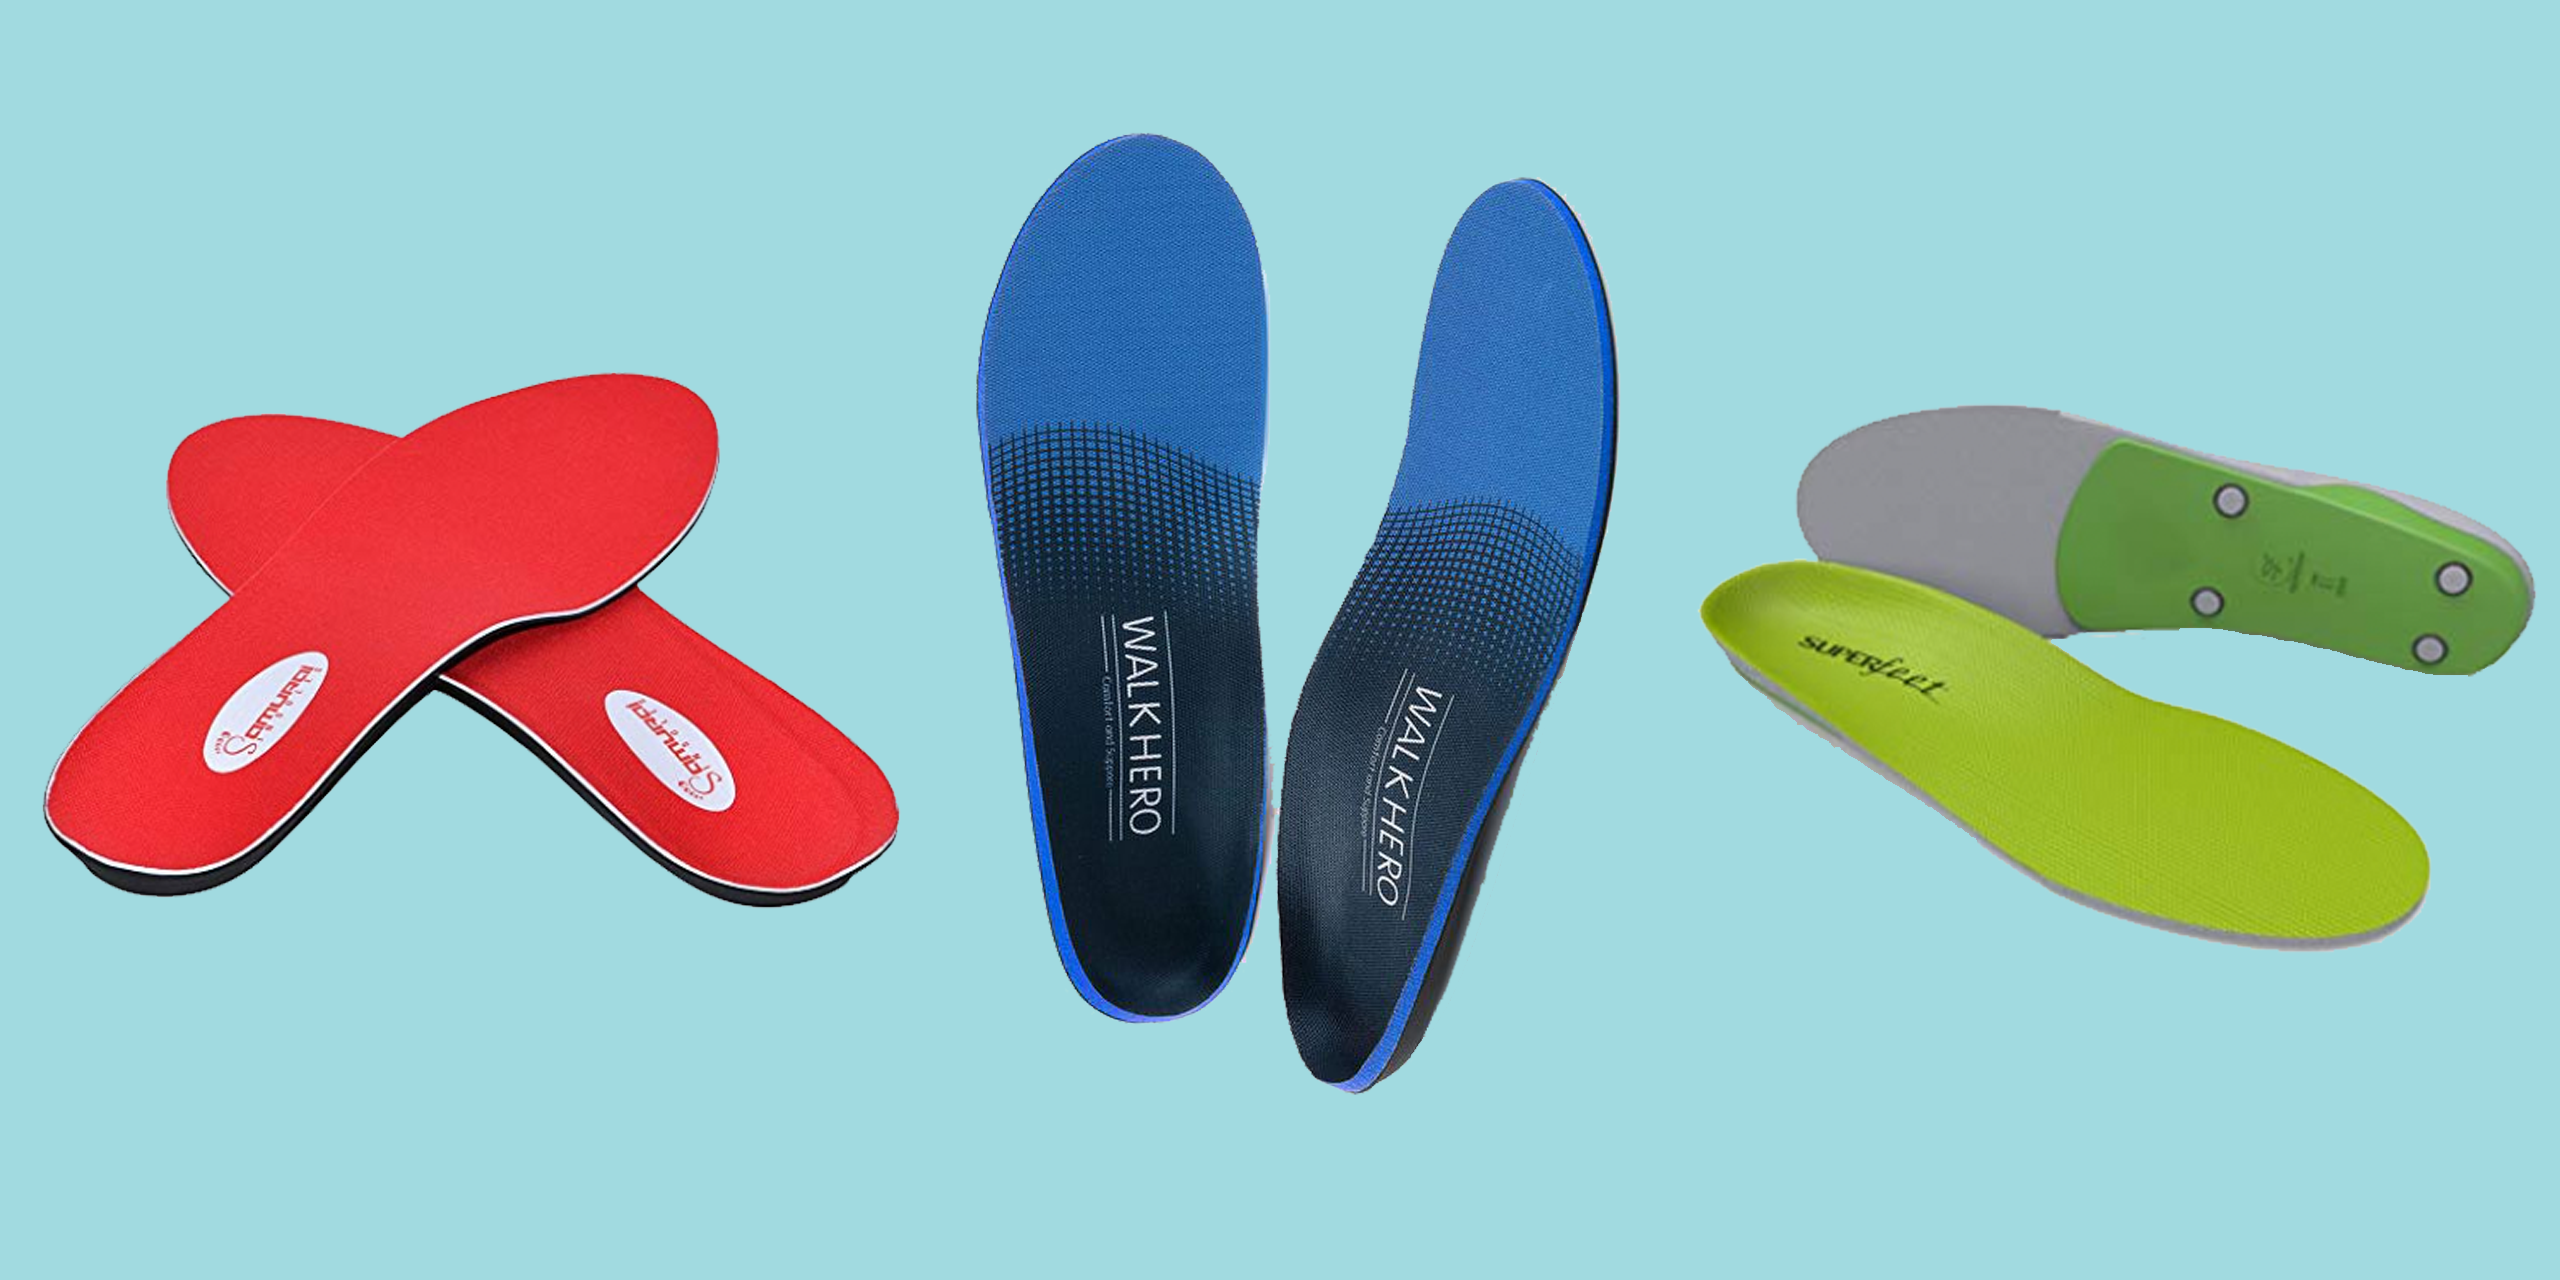 official site best prices outlet for sale 9 Best Insoles for Plantar Fasciitis 2020 - Inserts for Heel Pain